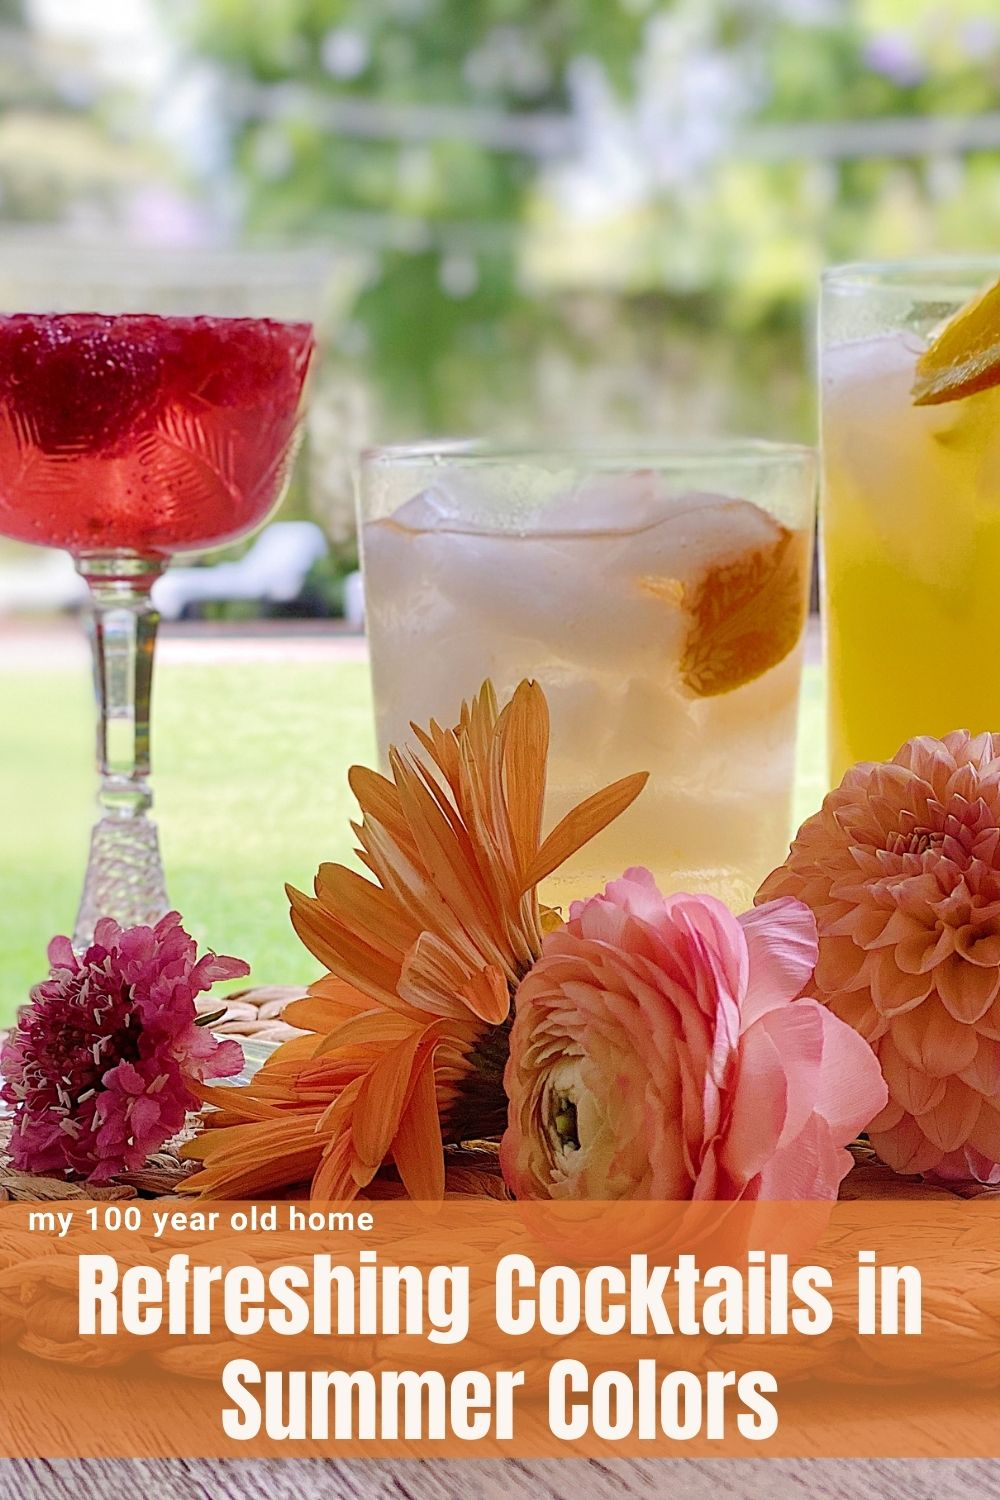 With warmer weather, it is also time to enjoy refreshing cocktails in summer colors. Today I am sharing four different recipes for the prettiest drinks in the most gorgeous summer colors!